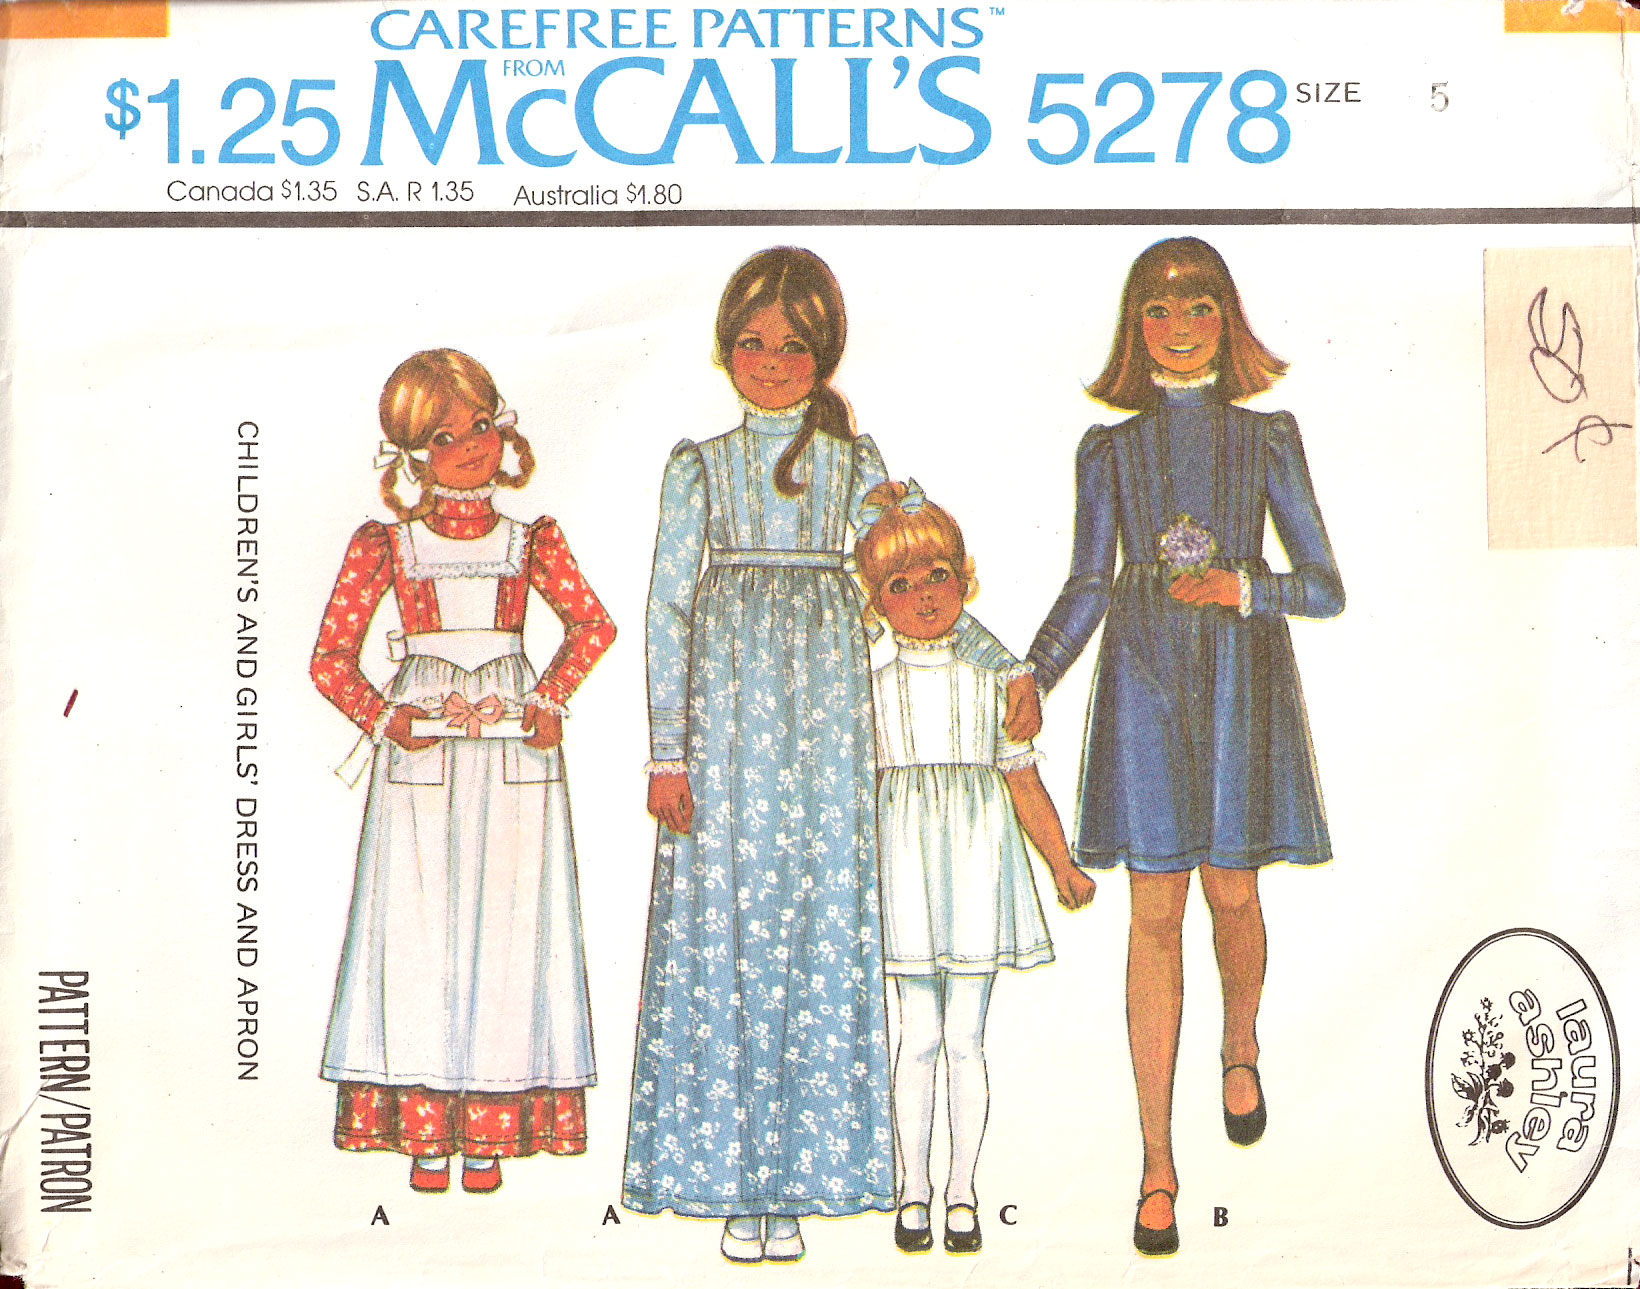 McCall\'s 5278 | Vintage Sewing Patterns | FANDOM powered by Wikia